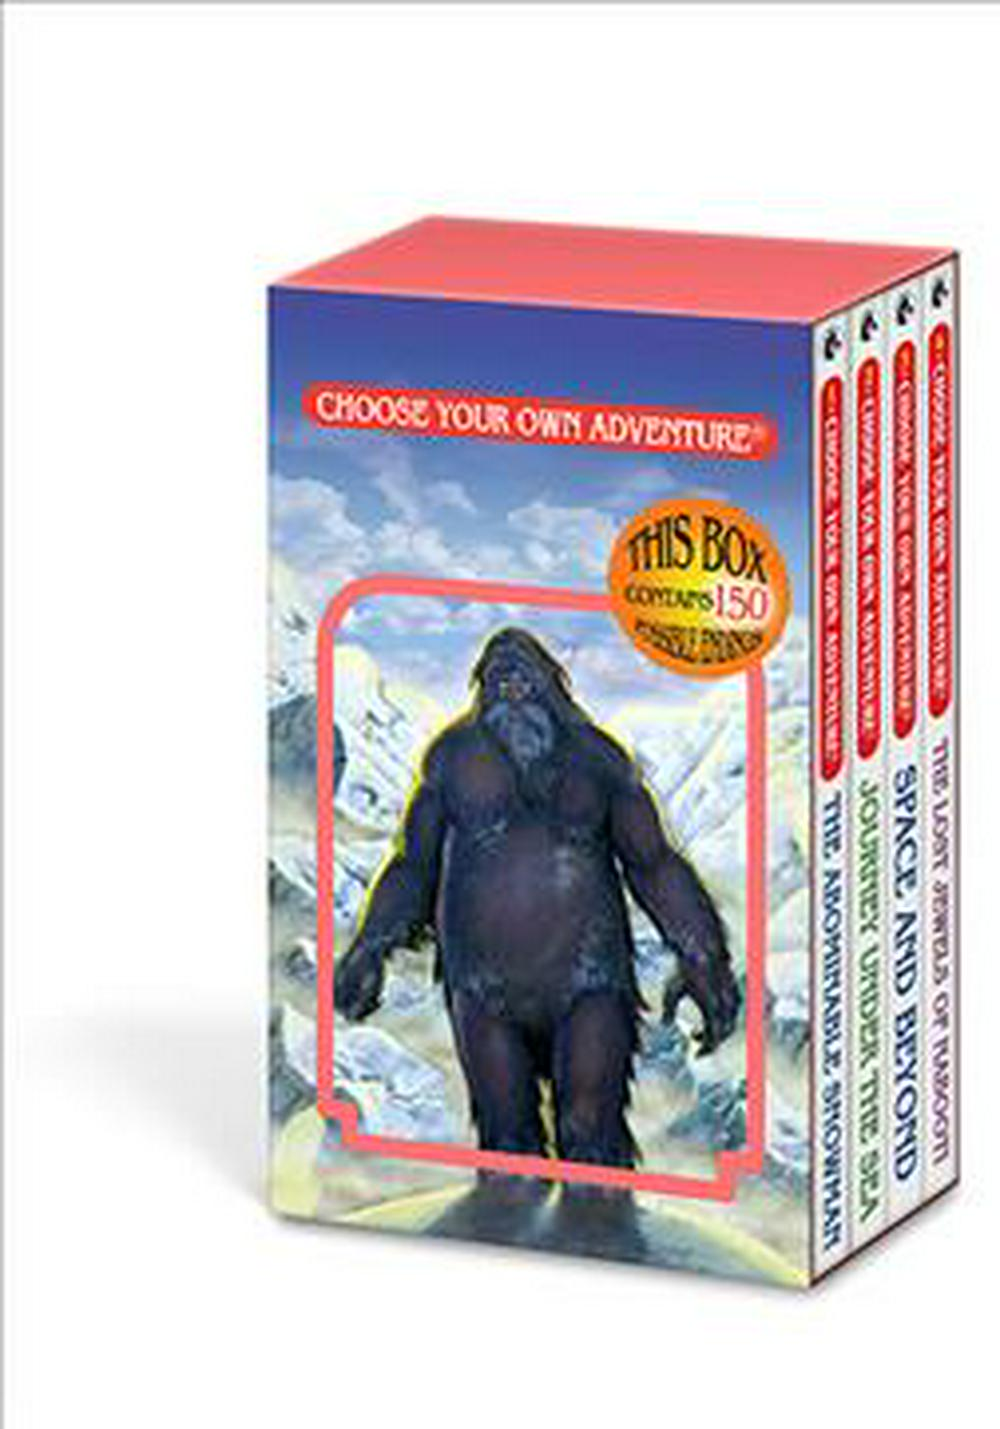 Choose Your Own Adventure 4-Book Set, Volume 1 by Chooseco, ISBN: 9781933390949